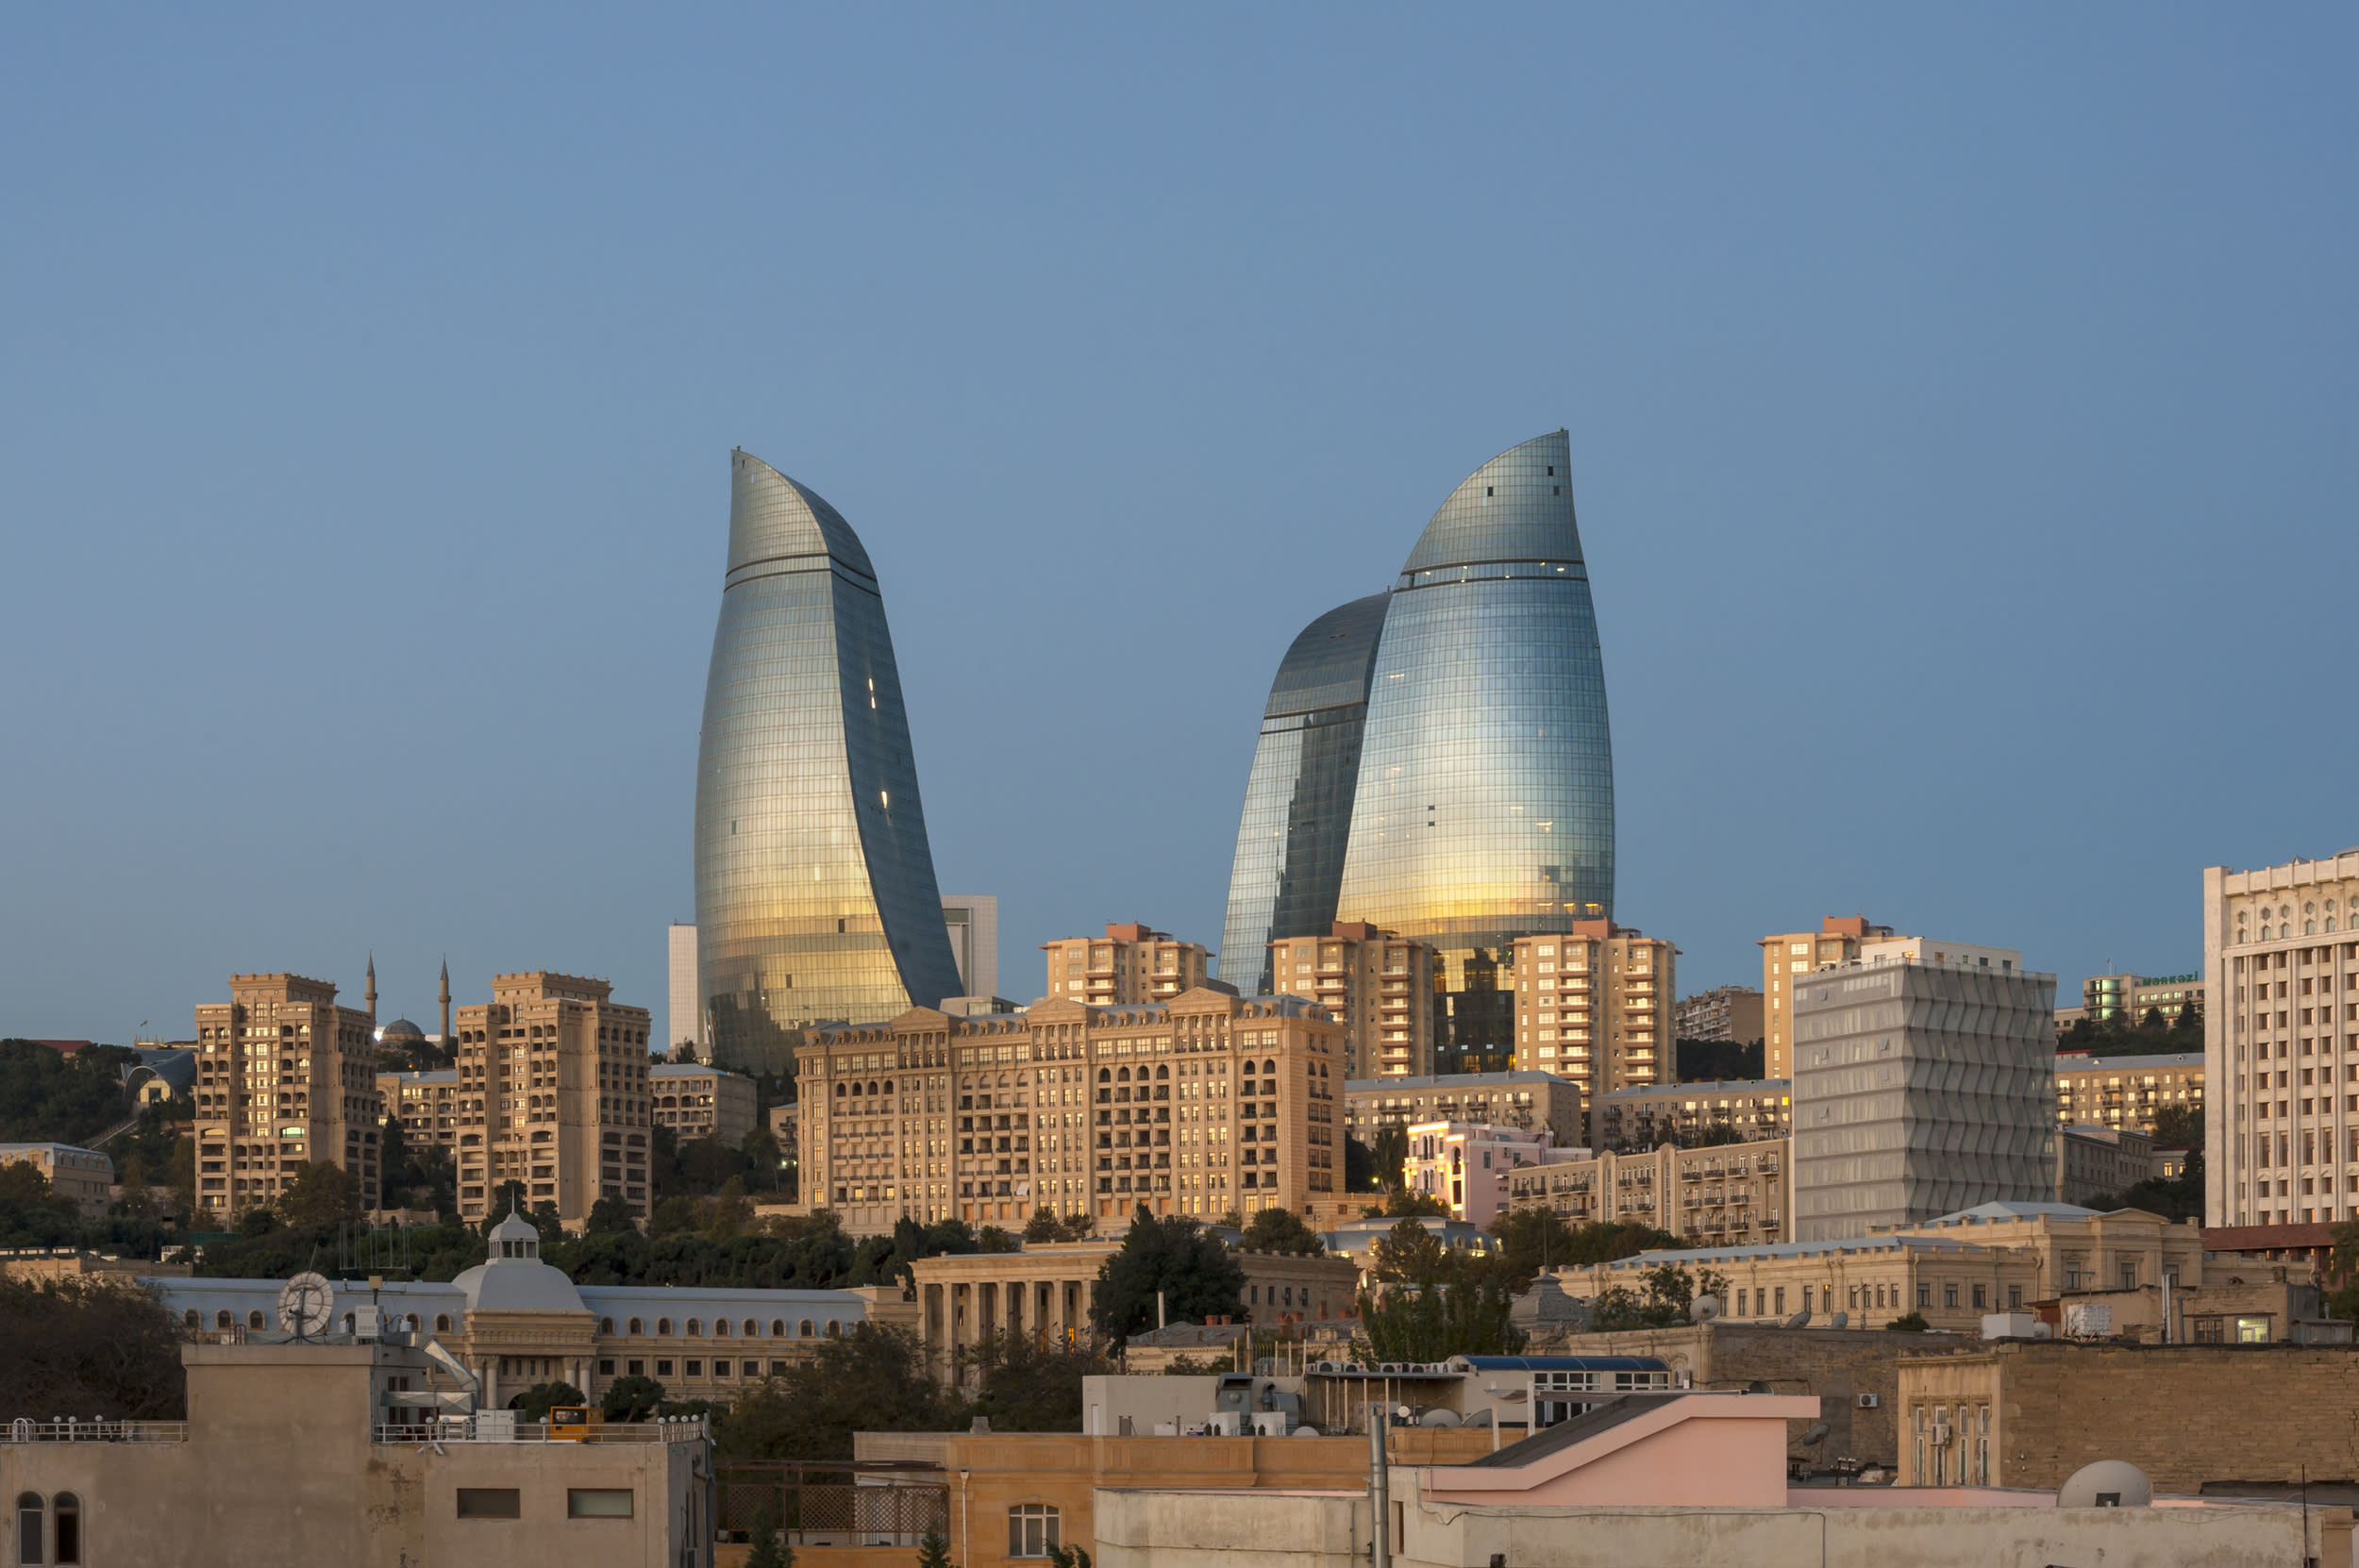 """<p>Baku is Azerbaijan's capital and has become home to a host of stunning and spectacular buildings in recent years that blend in with the ancient architecture. Baku is also a UNESCO listed 'Old City'.</p>  <p>TripAdvisor recommend the<a href=""""https://www.tripadvisor.co.uk/AttractionProductDetail?product=13710P4&d=459847&aidSuffix=tvrm&partner=Viator"""" target=""""_blank"""">Baku Old Town Walking Tour</a>, bookable from £35 per person.</p>"""